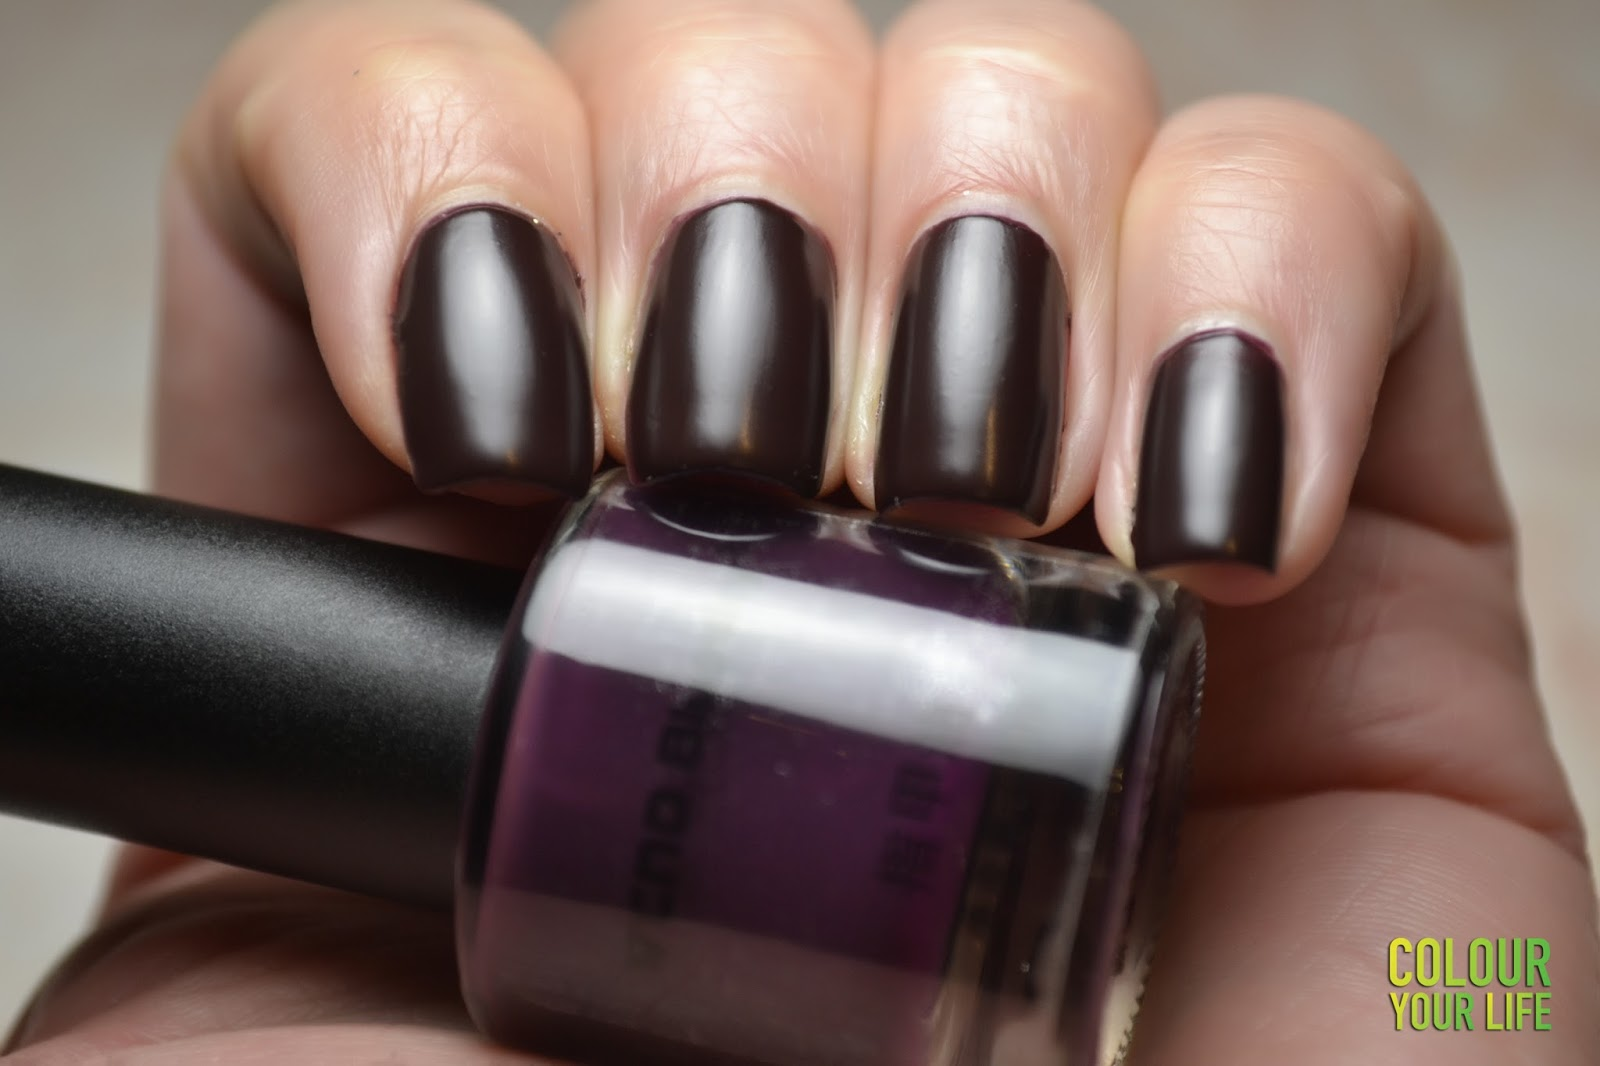 Colour your life: Thermal polish review